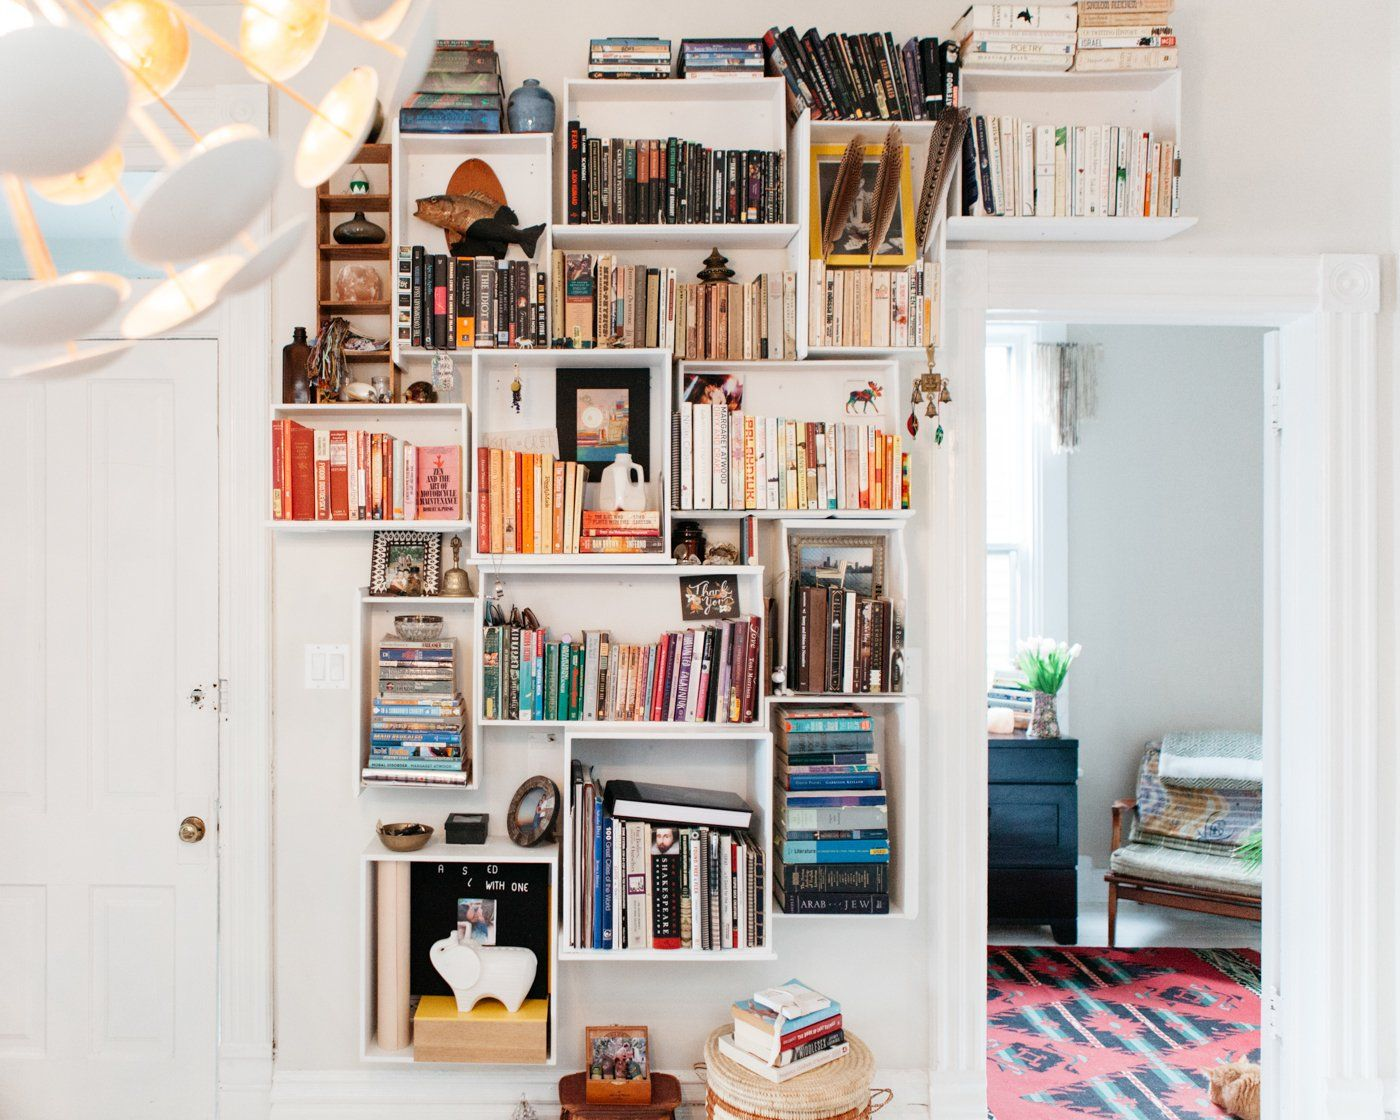 A defense of books as decor dresser drawers paint colors and mike